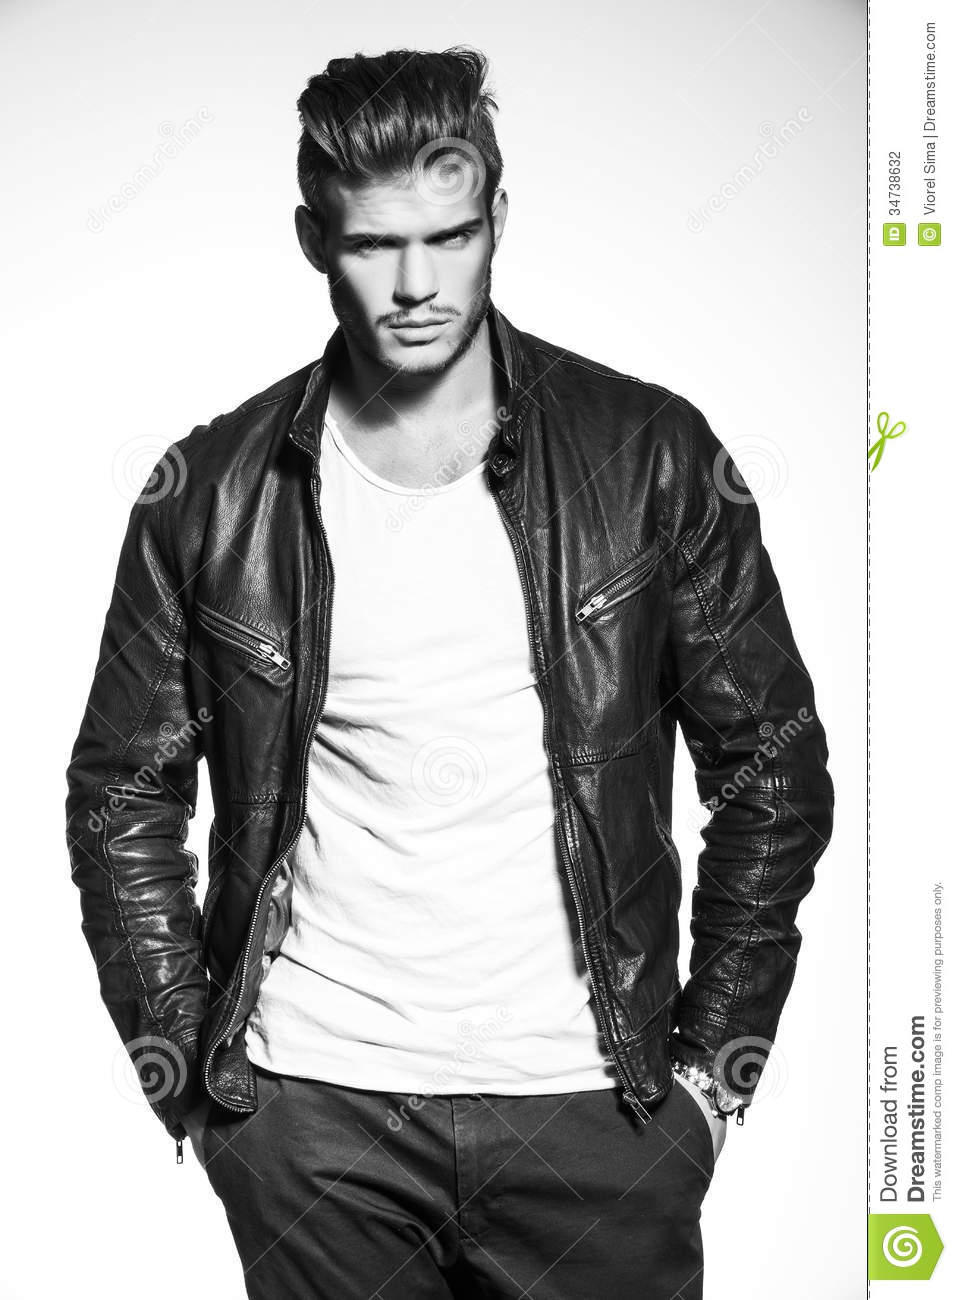 Leather jacket fashion - Fashion Model In Leather Jacket With Hands In His Pockets